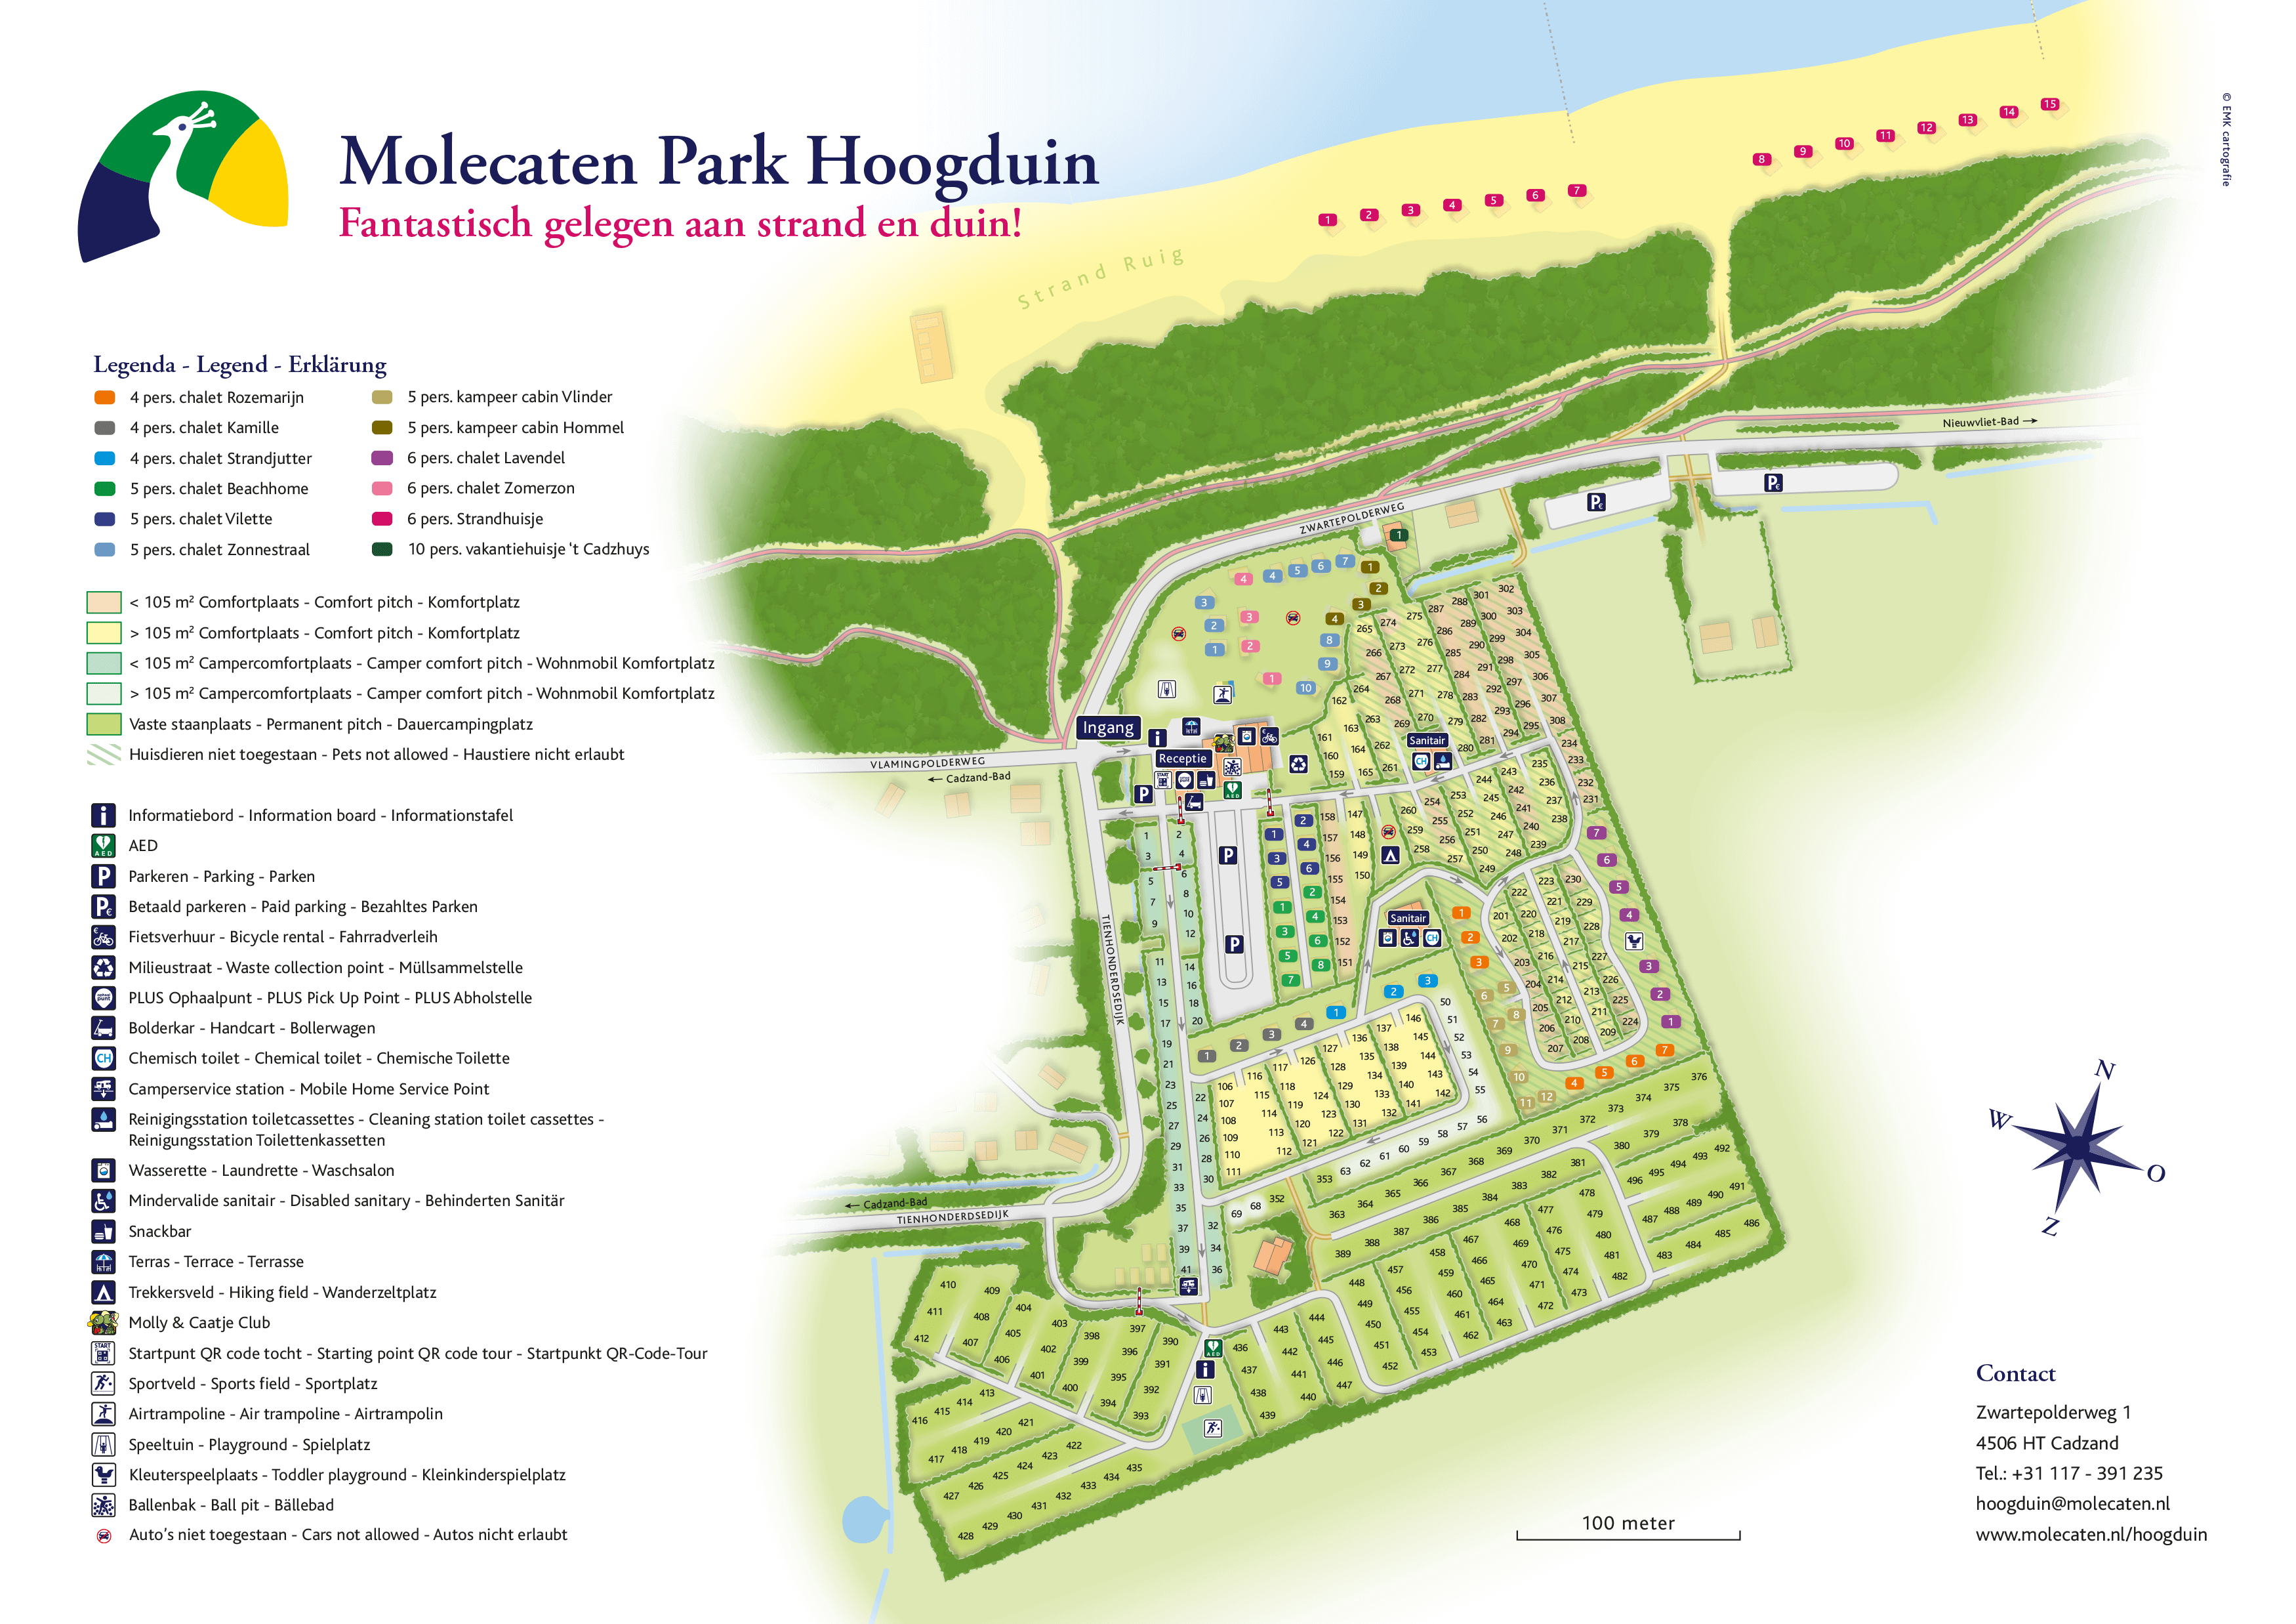 Molecaten Park Hoogduin accommodation.parkmap.alttext